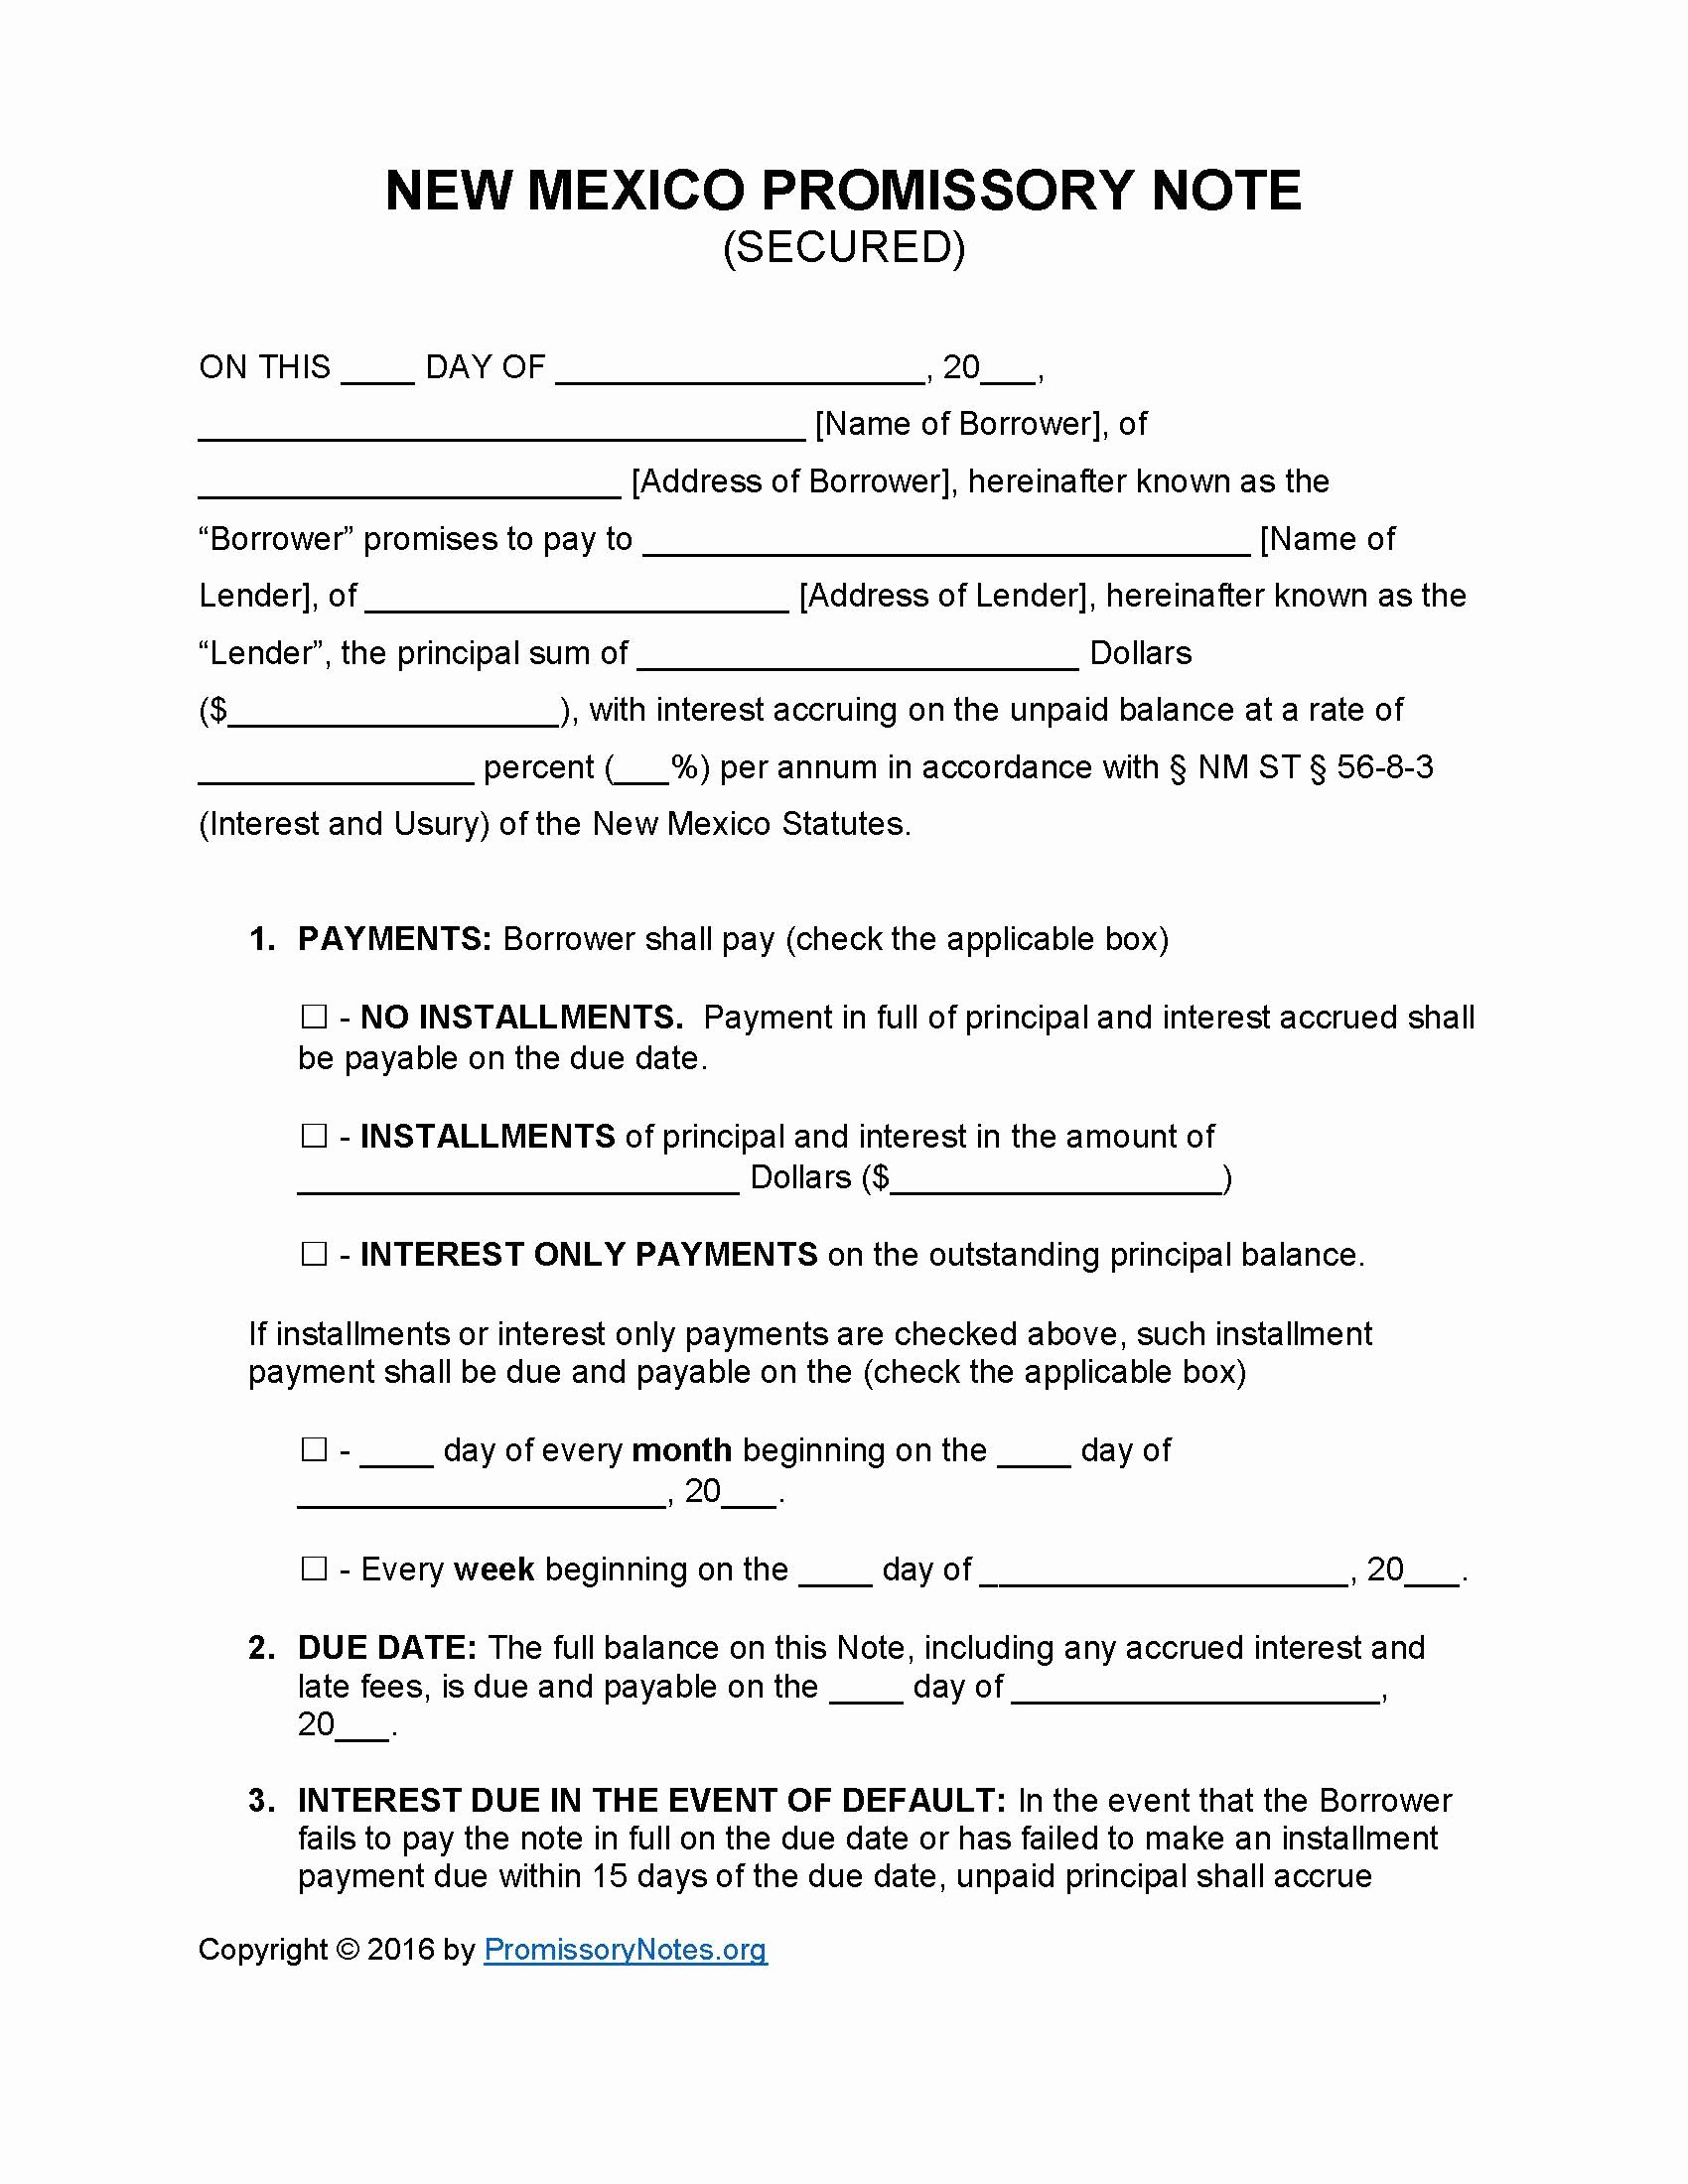 Secured Promissory Note Template Awesome New Mexico Secured Promissory Note Template Promissory Notes Promissory Notes